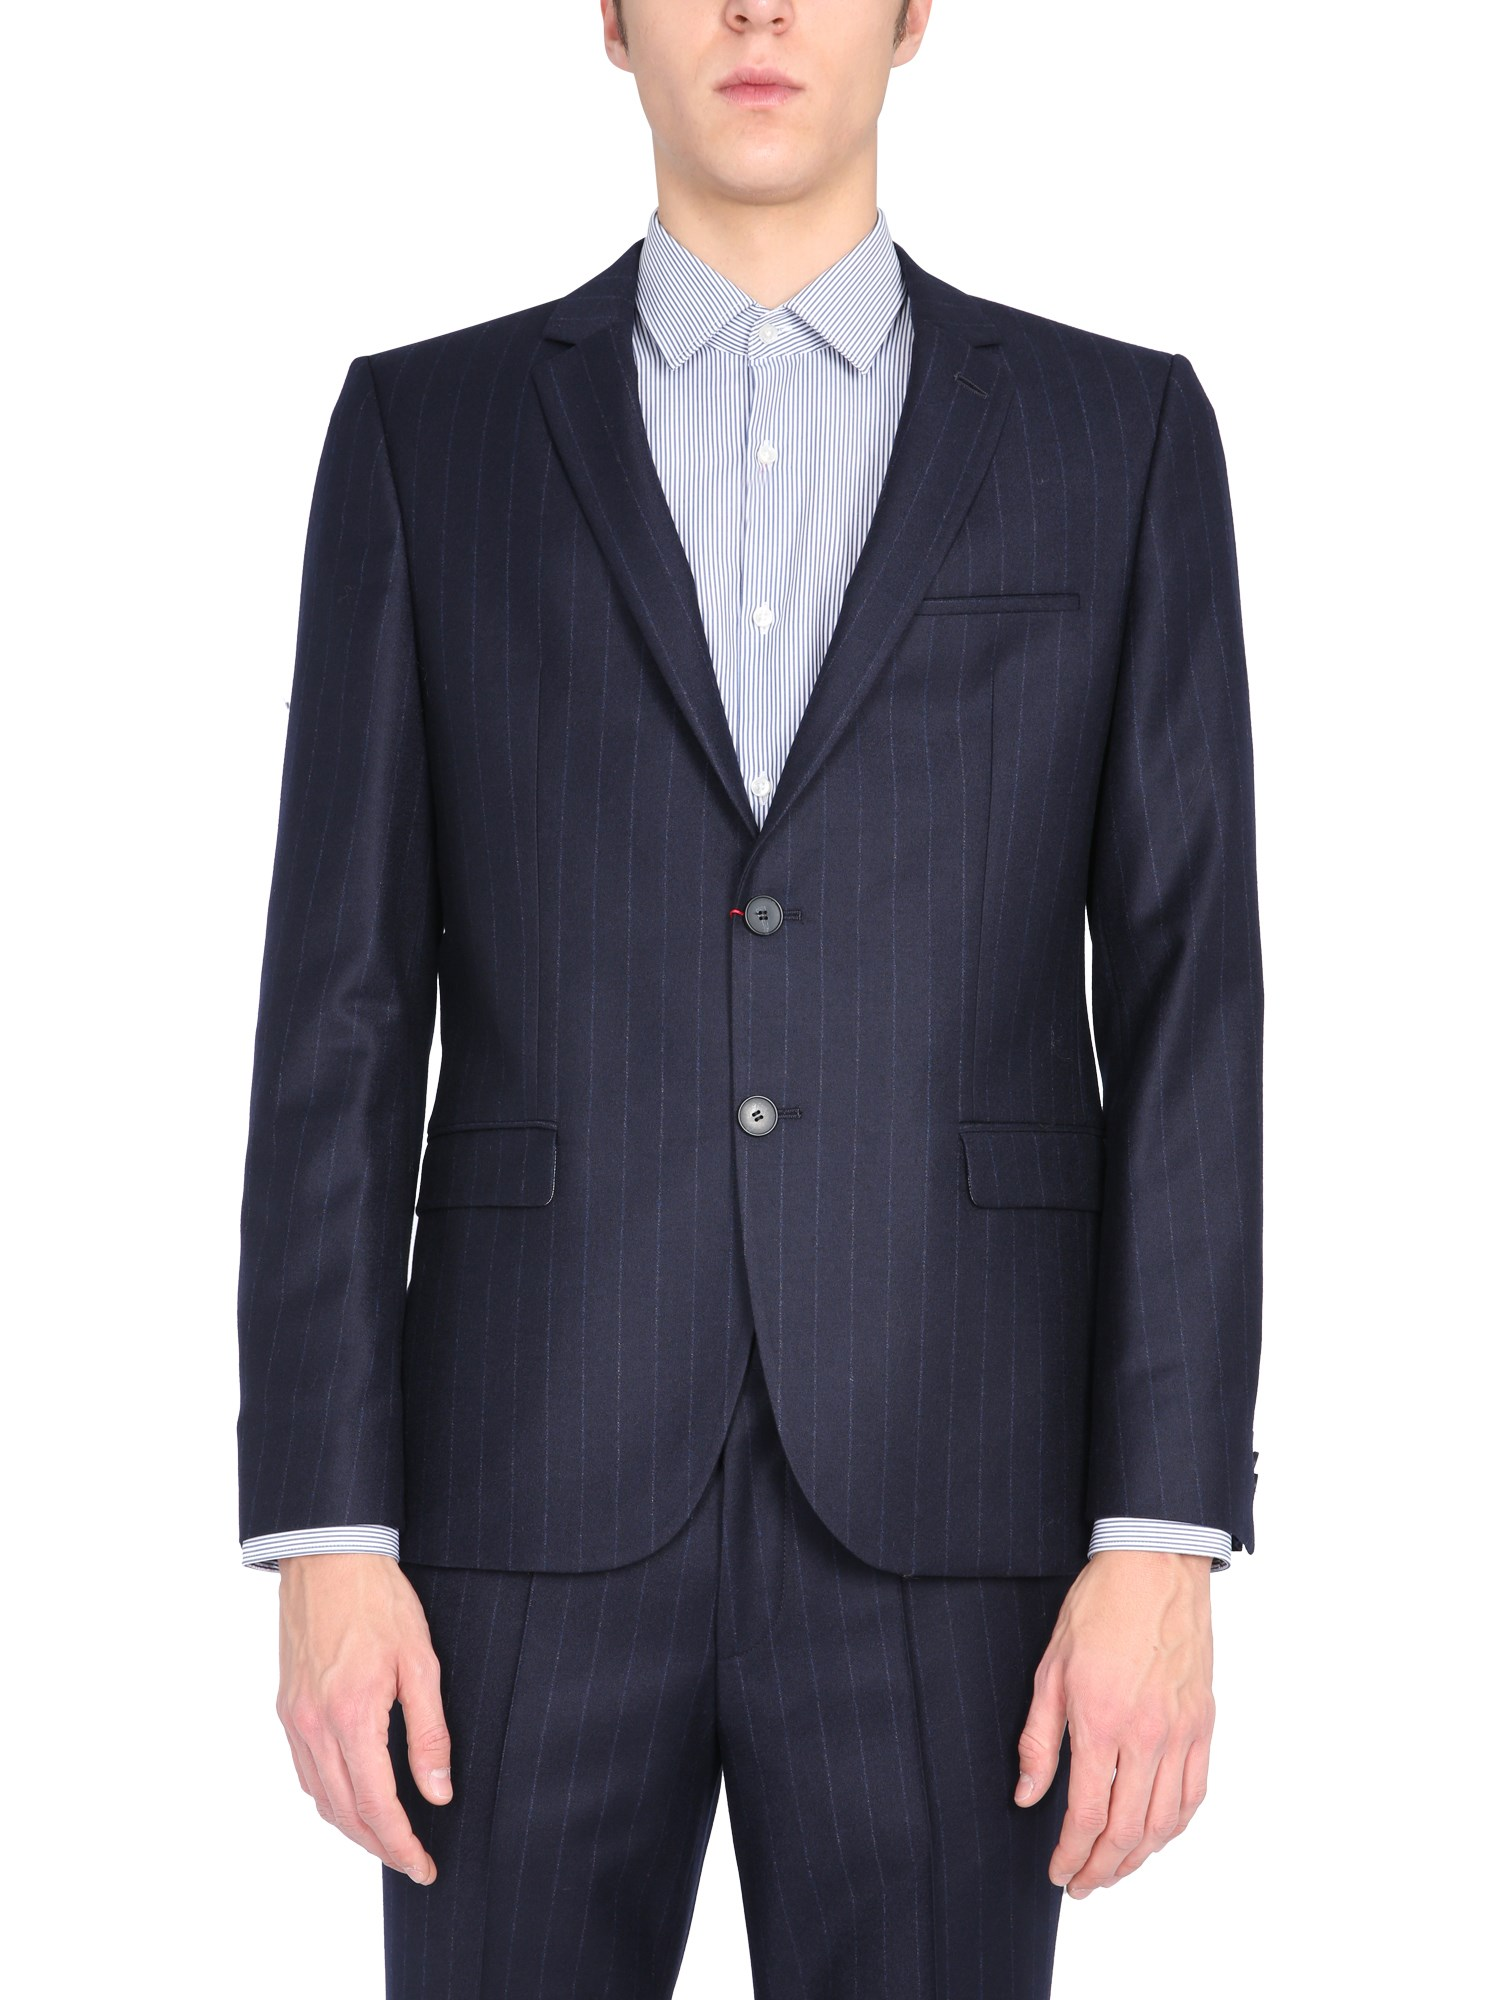 Hugo Boss EXTRA SLIM FIT JACKET